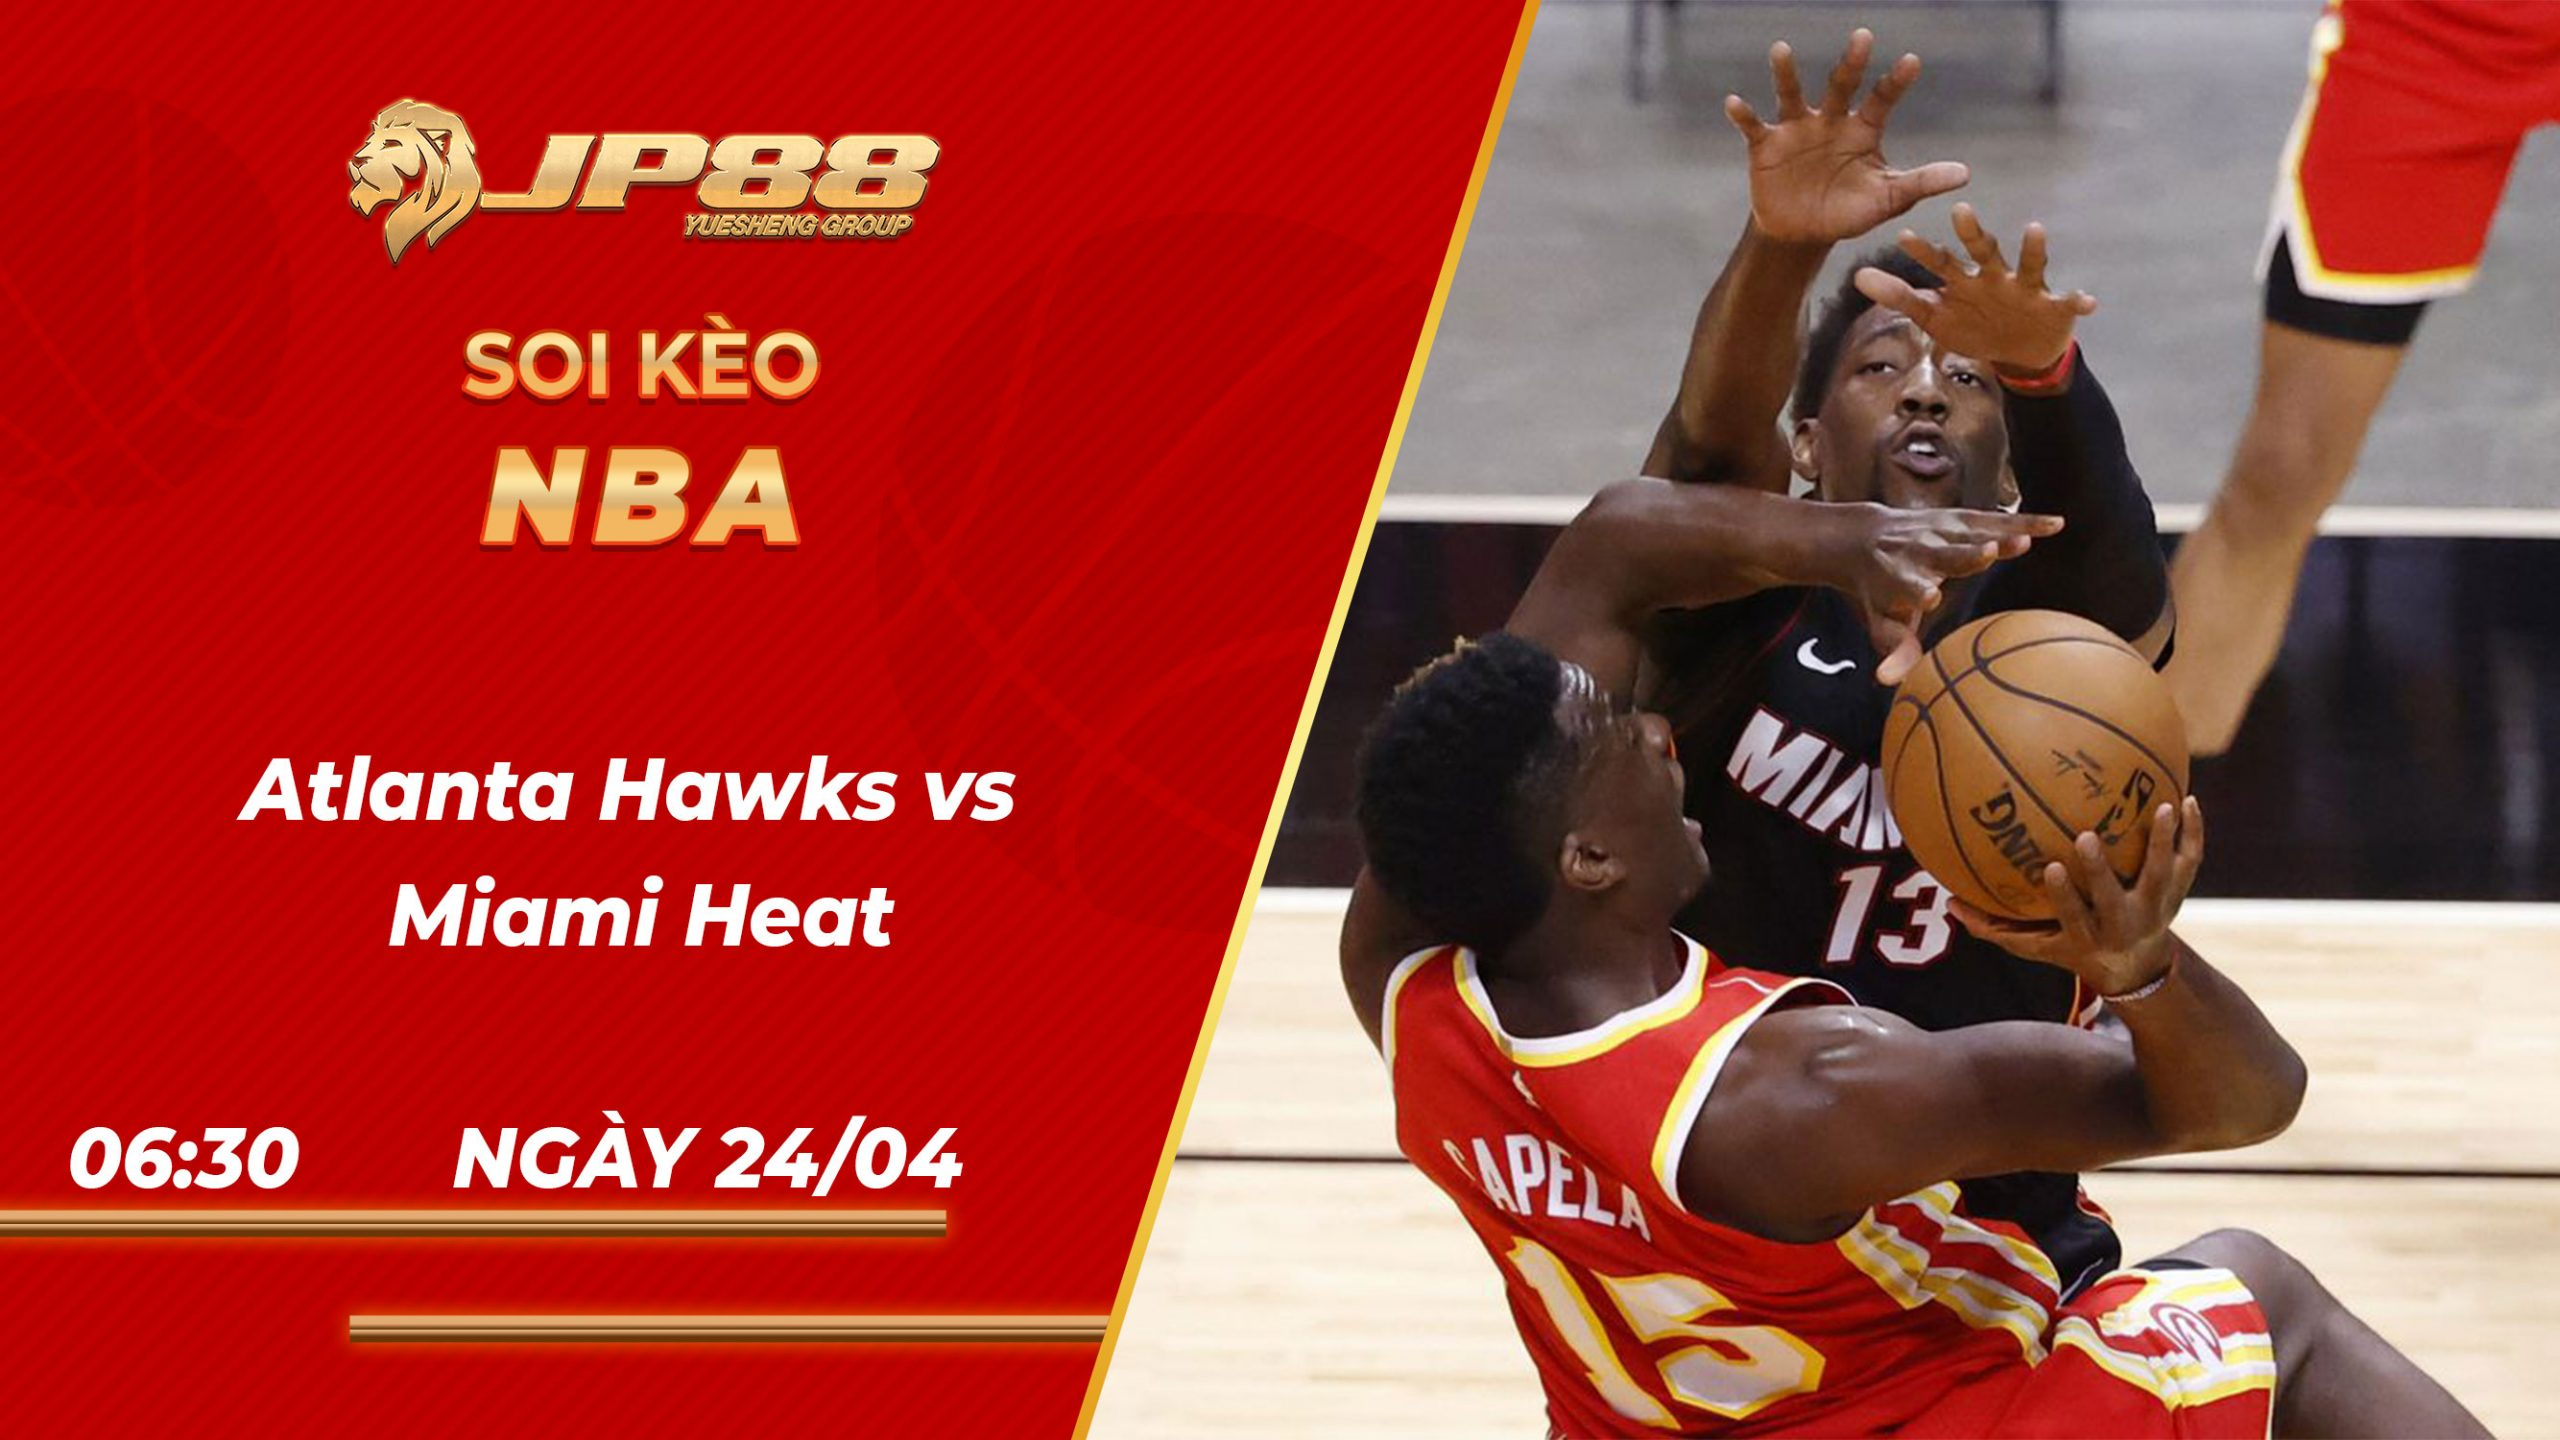 Soi kèo bóng rổ Atlanta Hawks vs Miami Heat 06h30 24/04/2021 – NBA